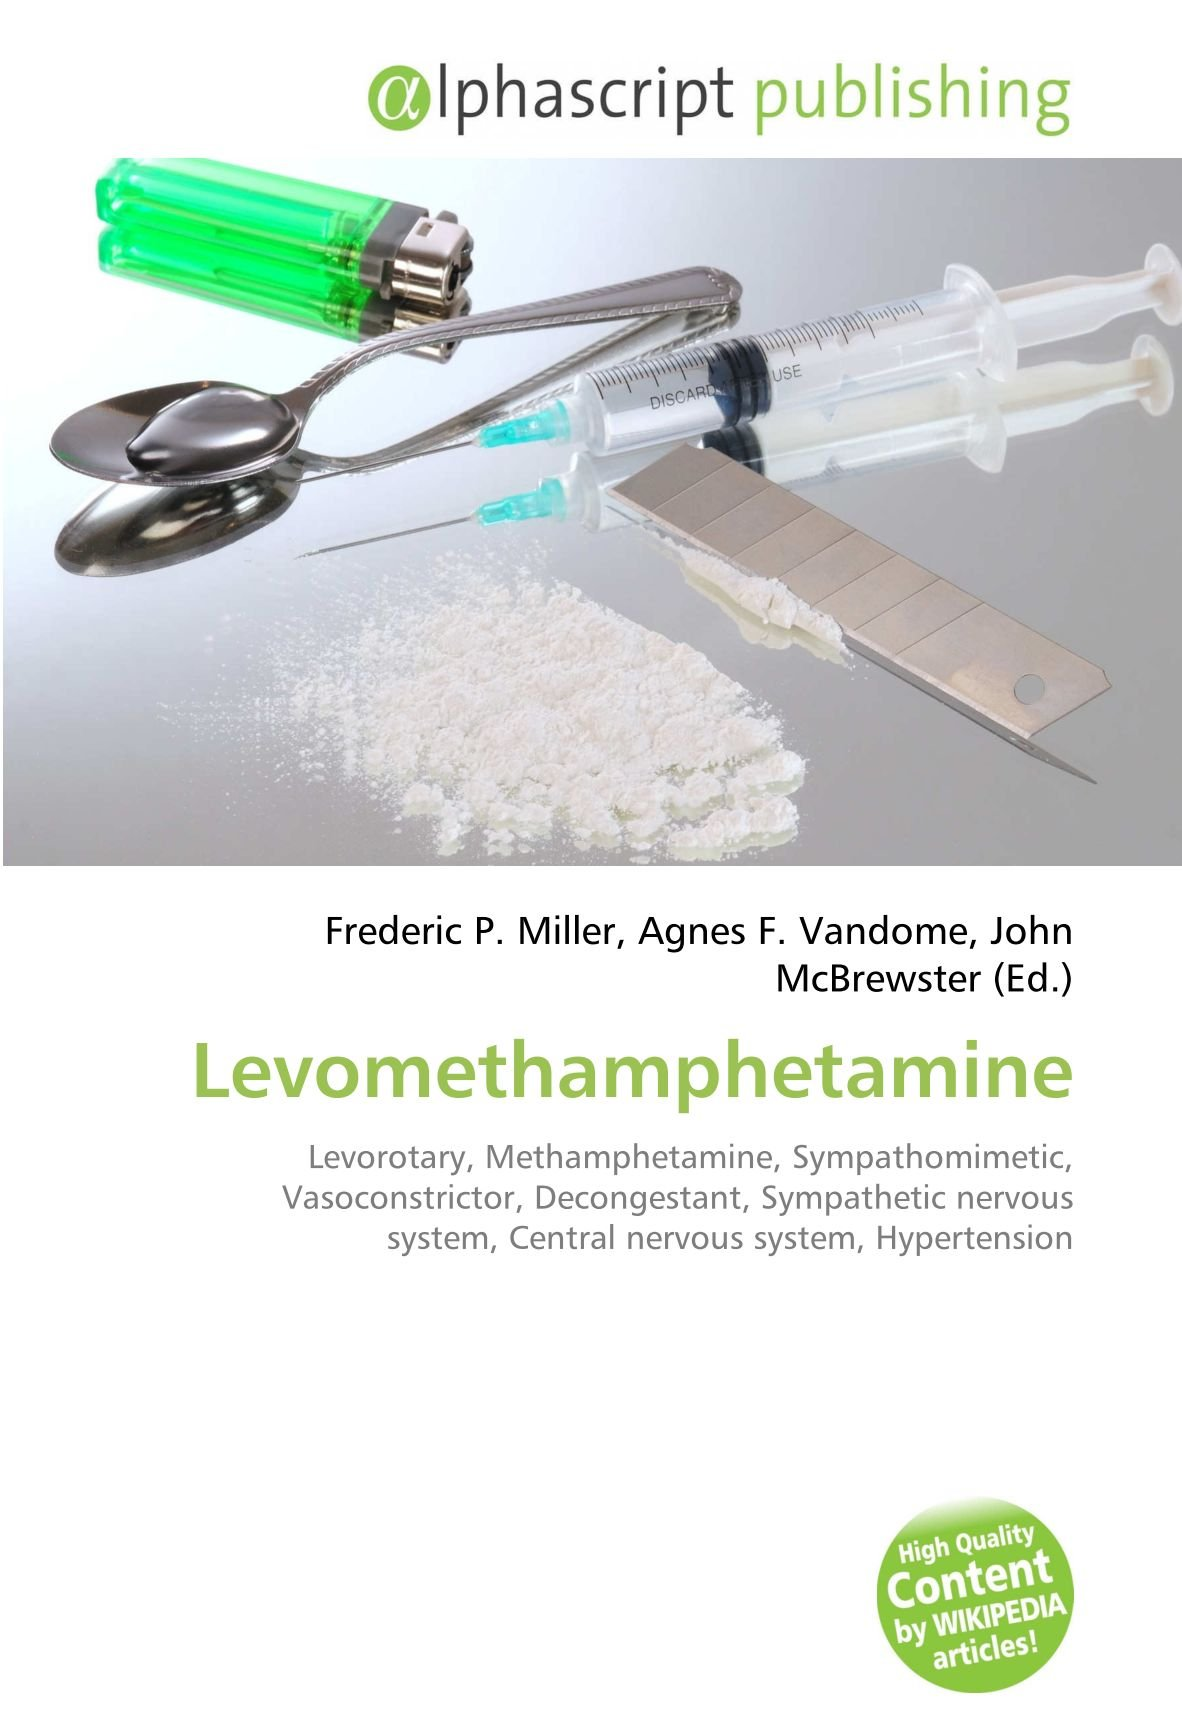 Amazon fr - Levomethamphetamine: Levorotary, Methamphetamine